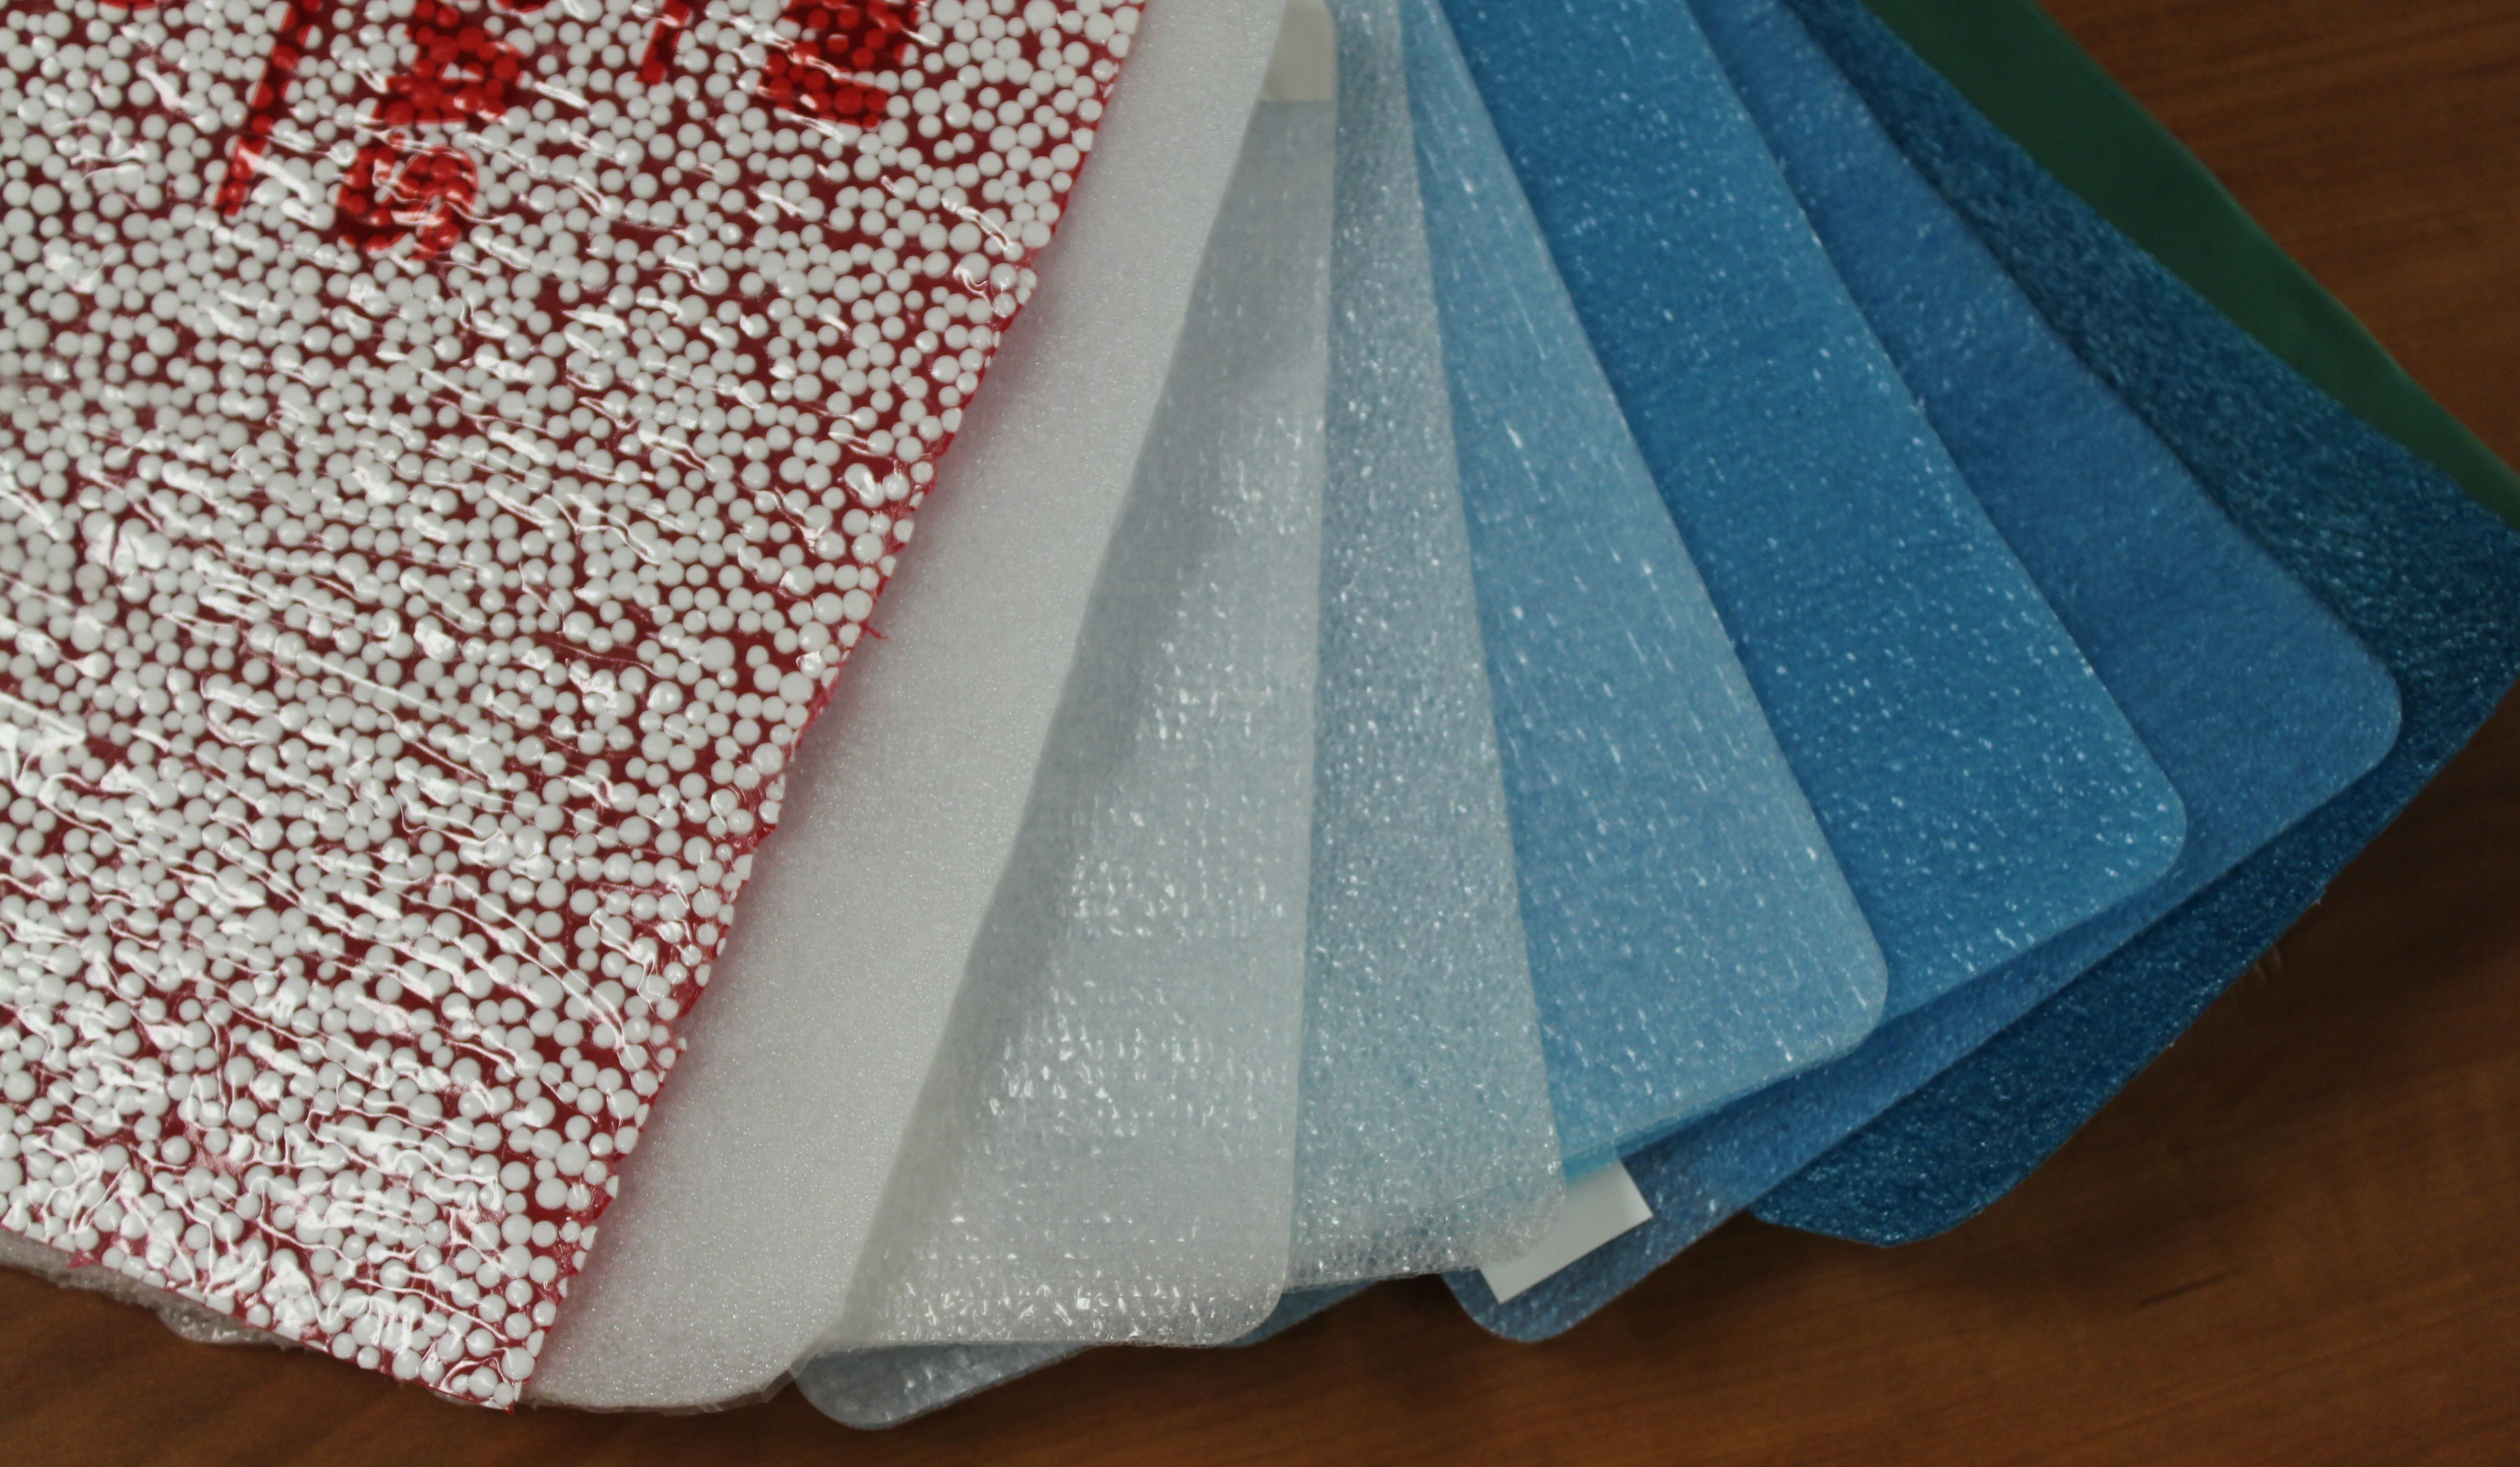 laminate underlayment do i need laminate flooring underlayment silent blue laminate wood floor  underlayment YKGCEXM